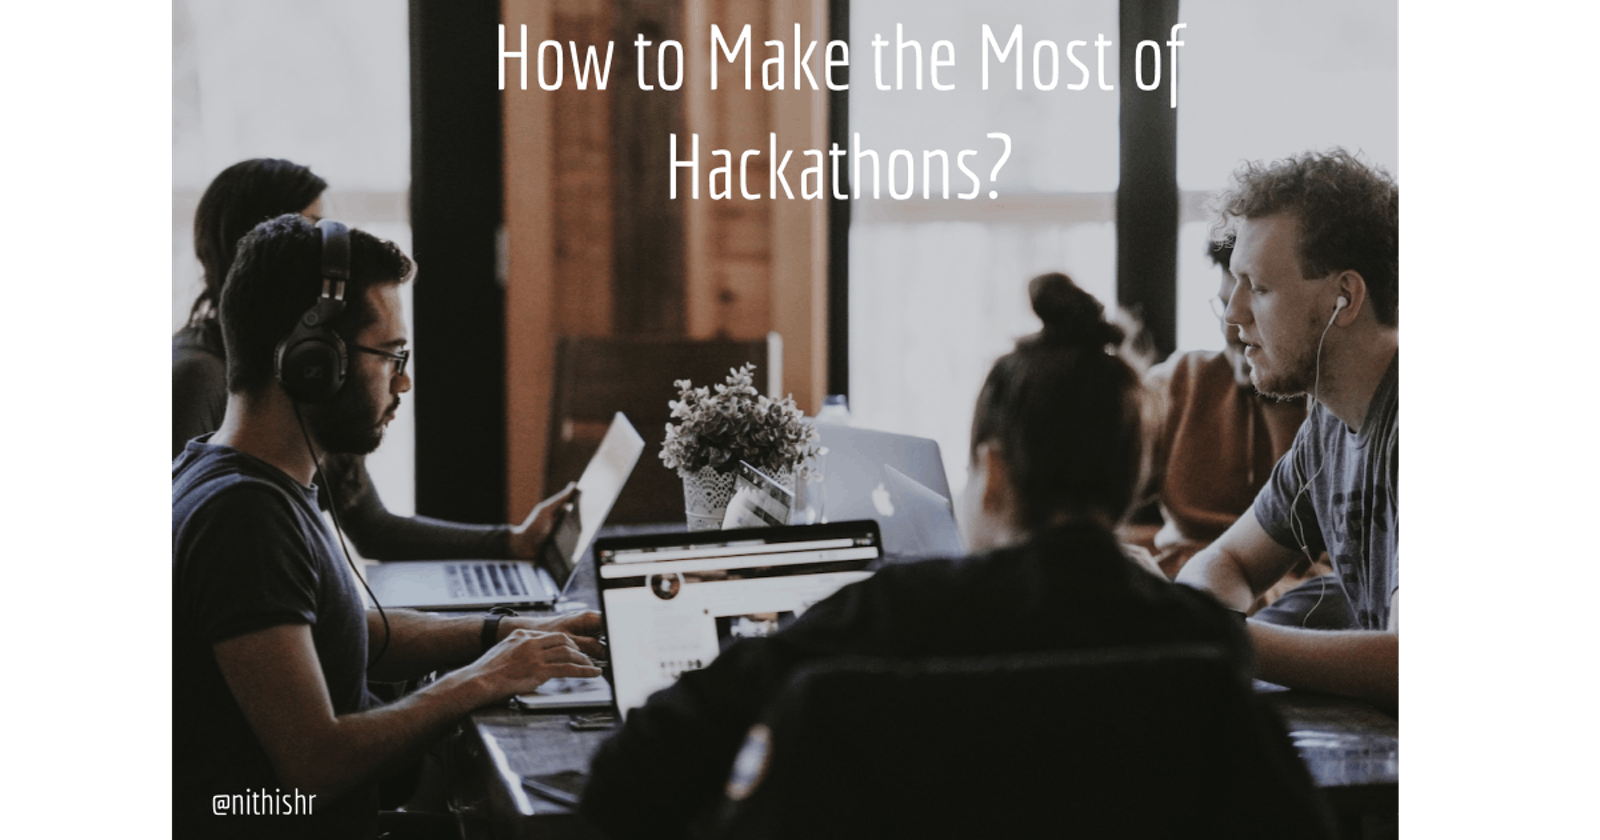 How to Make the Most of Hackathons?